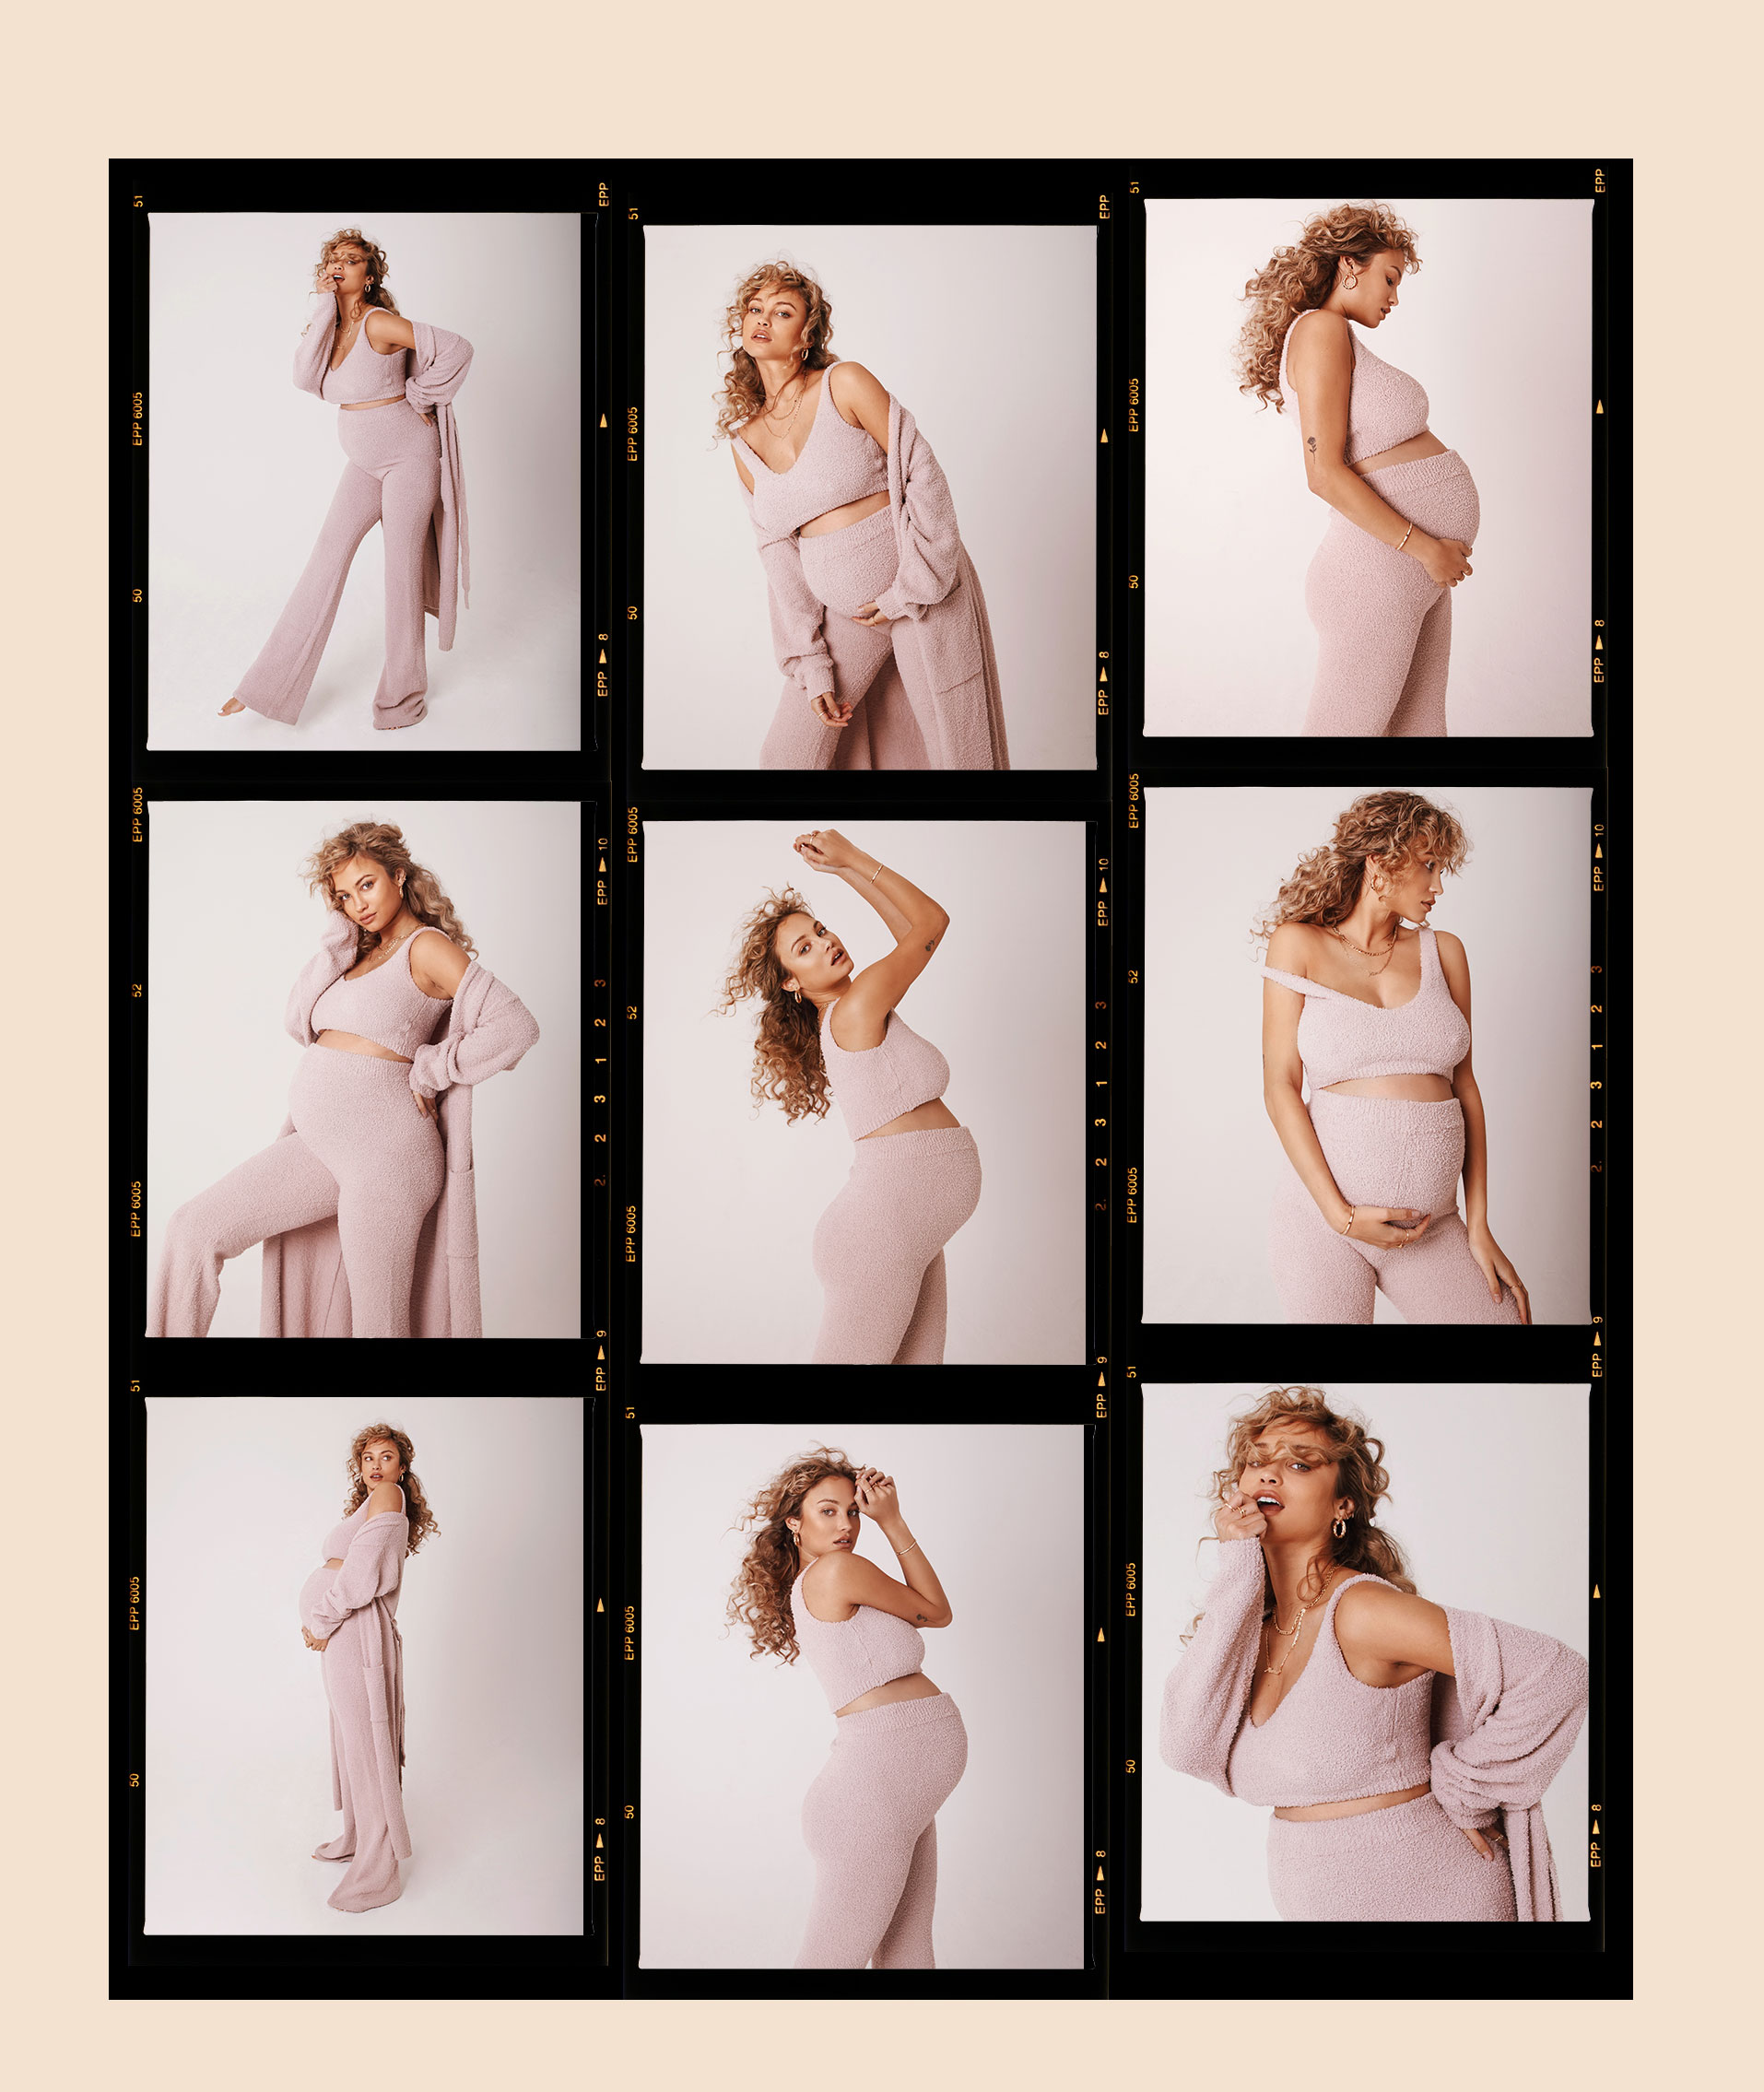 Prettylittlemama Maternity Wear Lookbook Image 2 Desktop